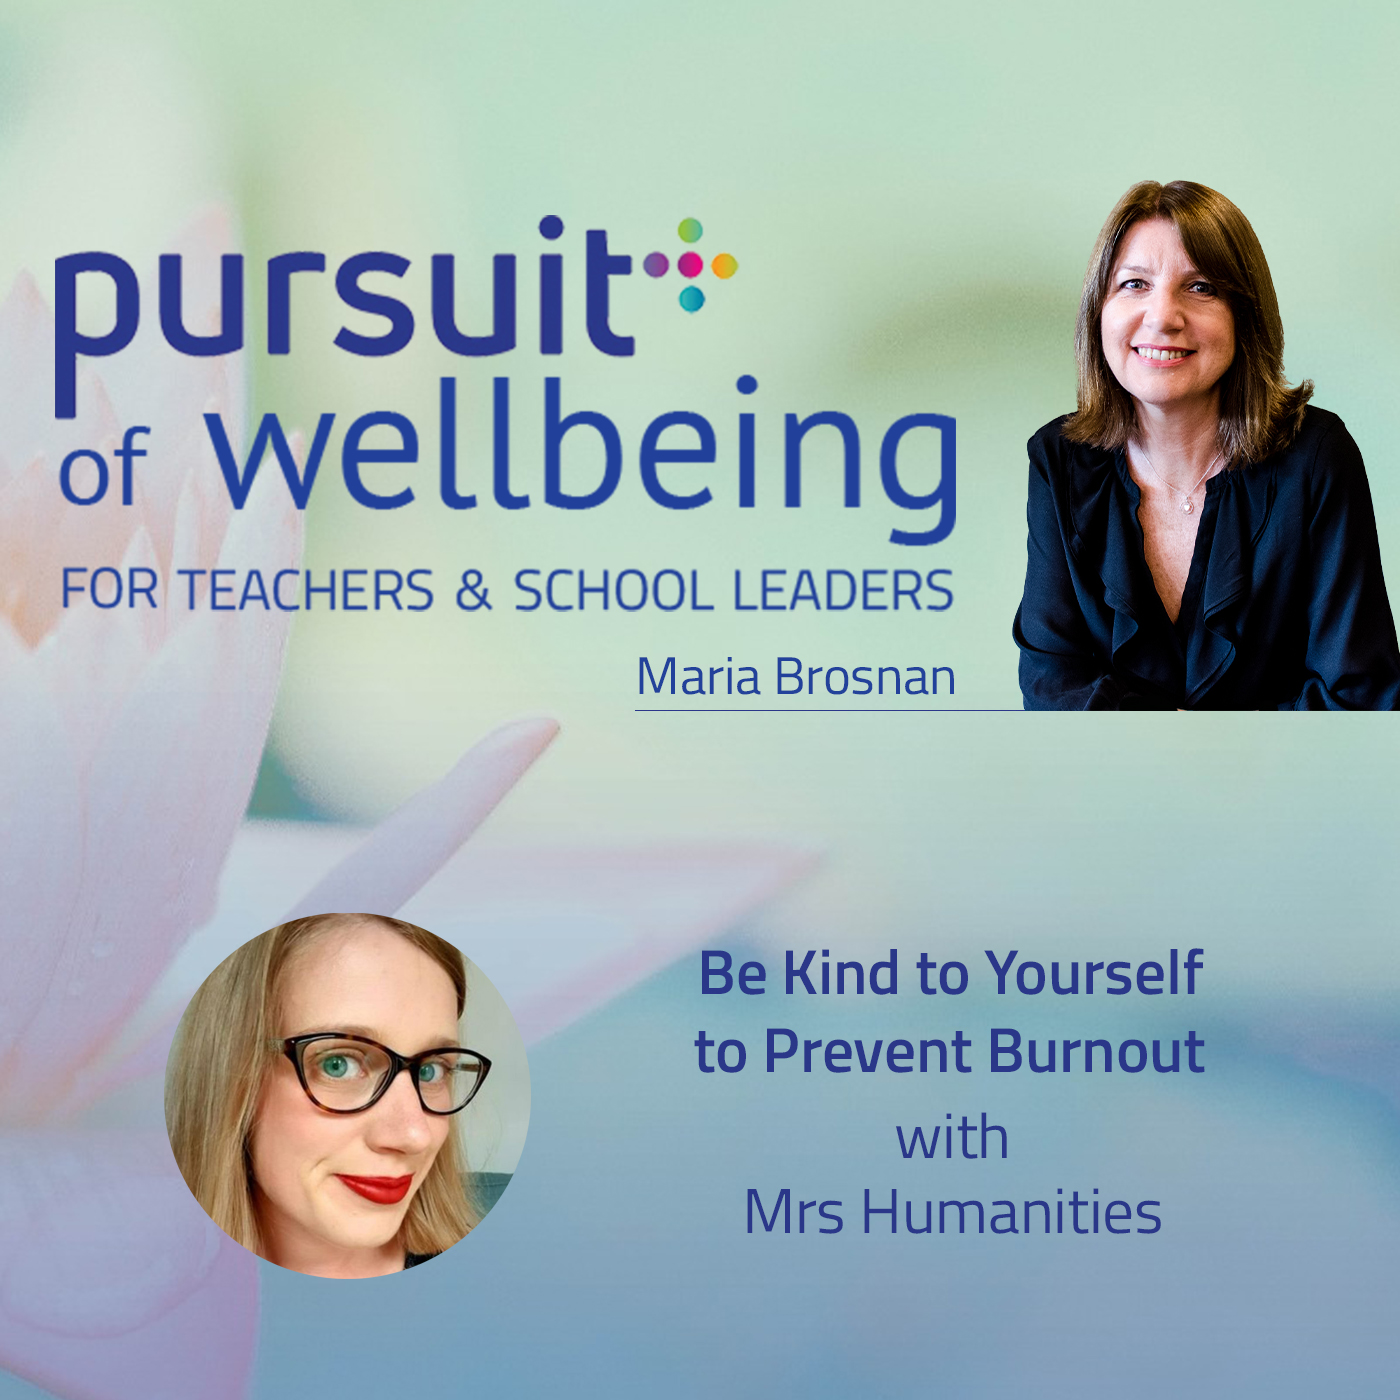 Be Kind to Yourself to Prevent Burnout with Mrs Humanities